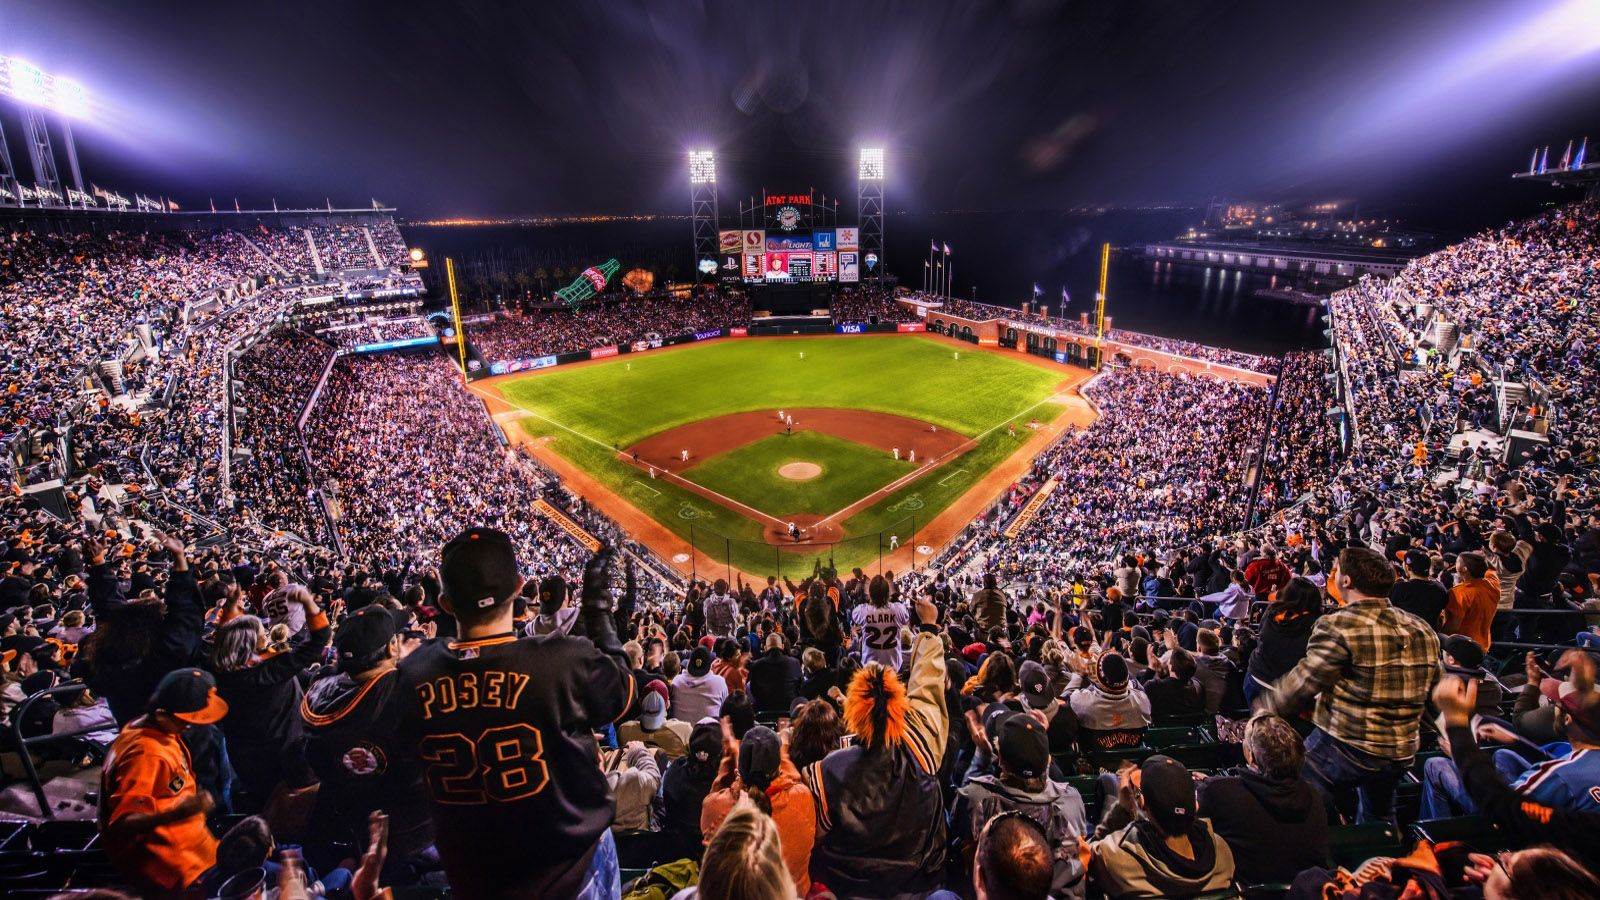 San Francisco Giants Wallpaper San Francisco Giants Are A Major